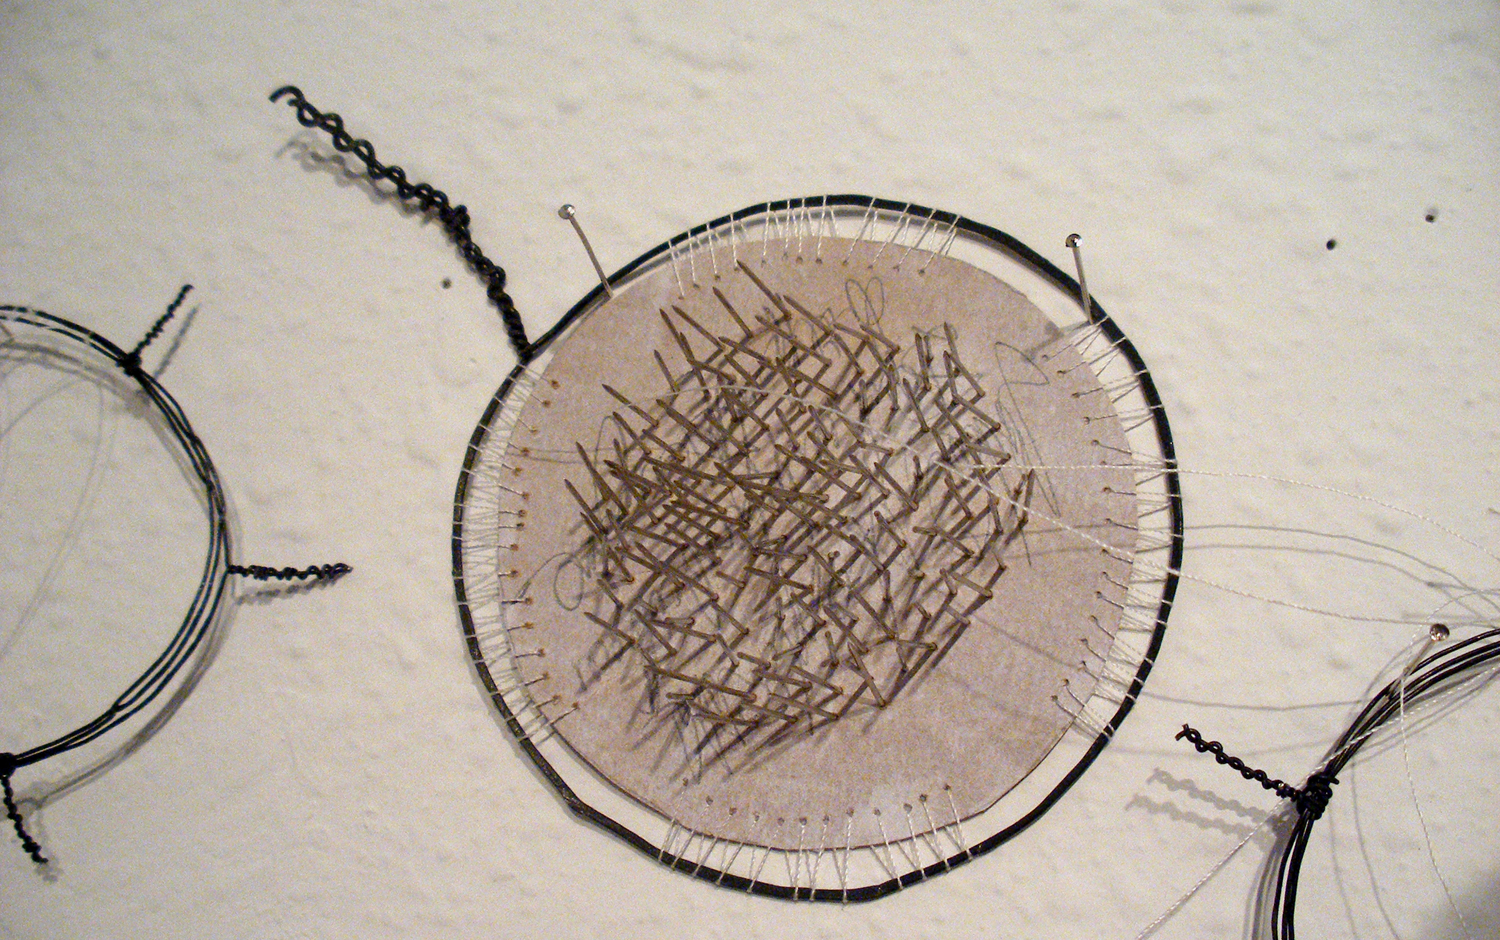 memory cell single with pins.jpg